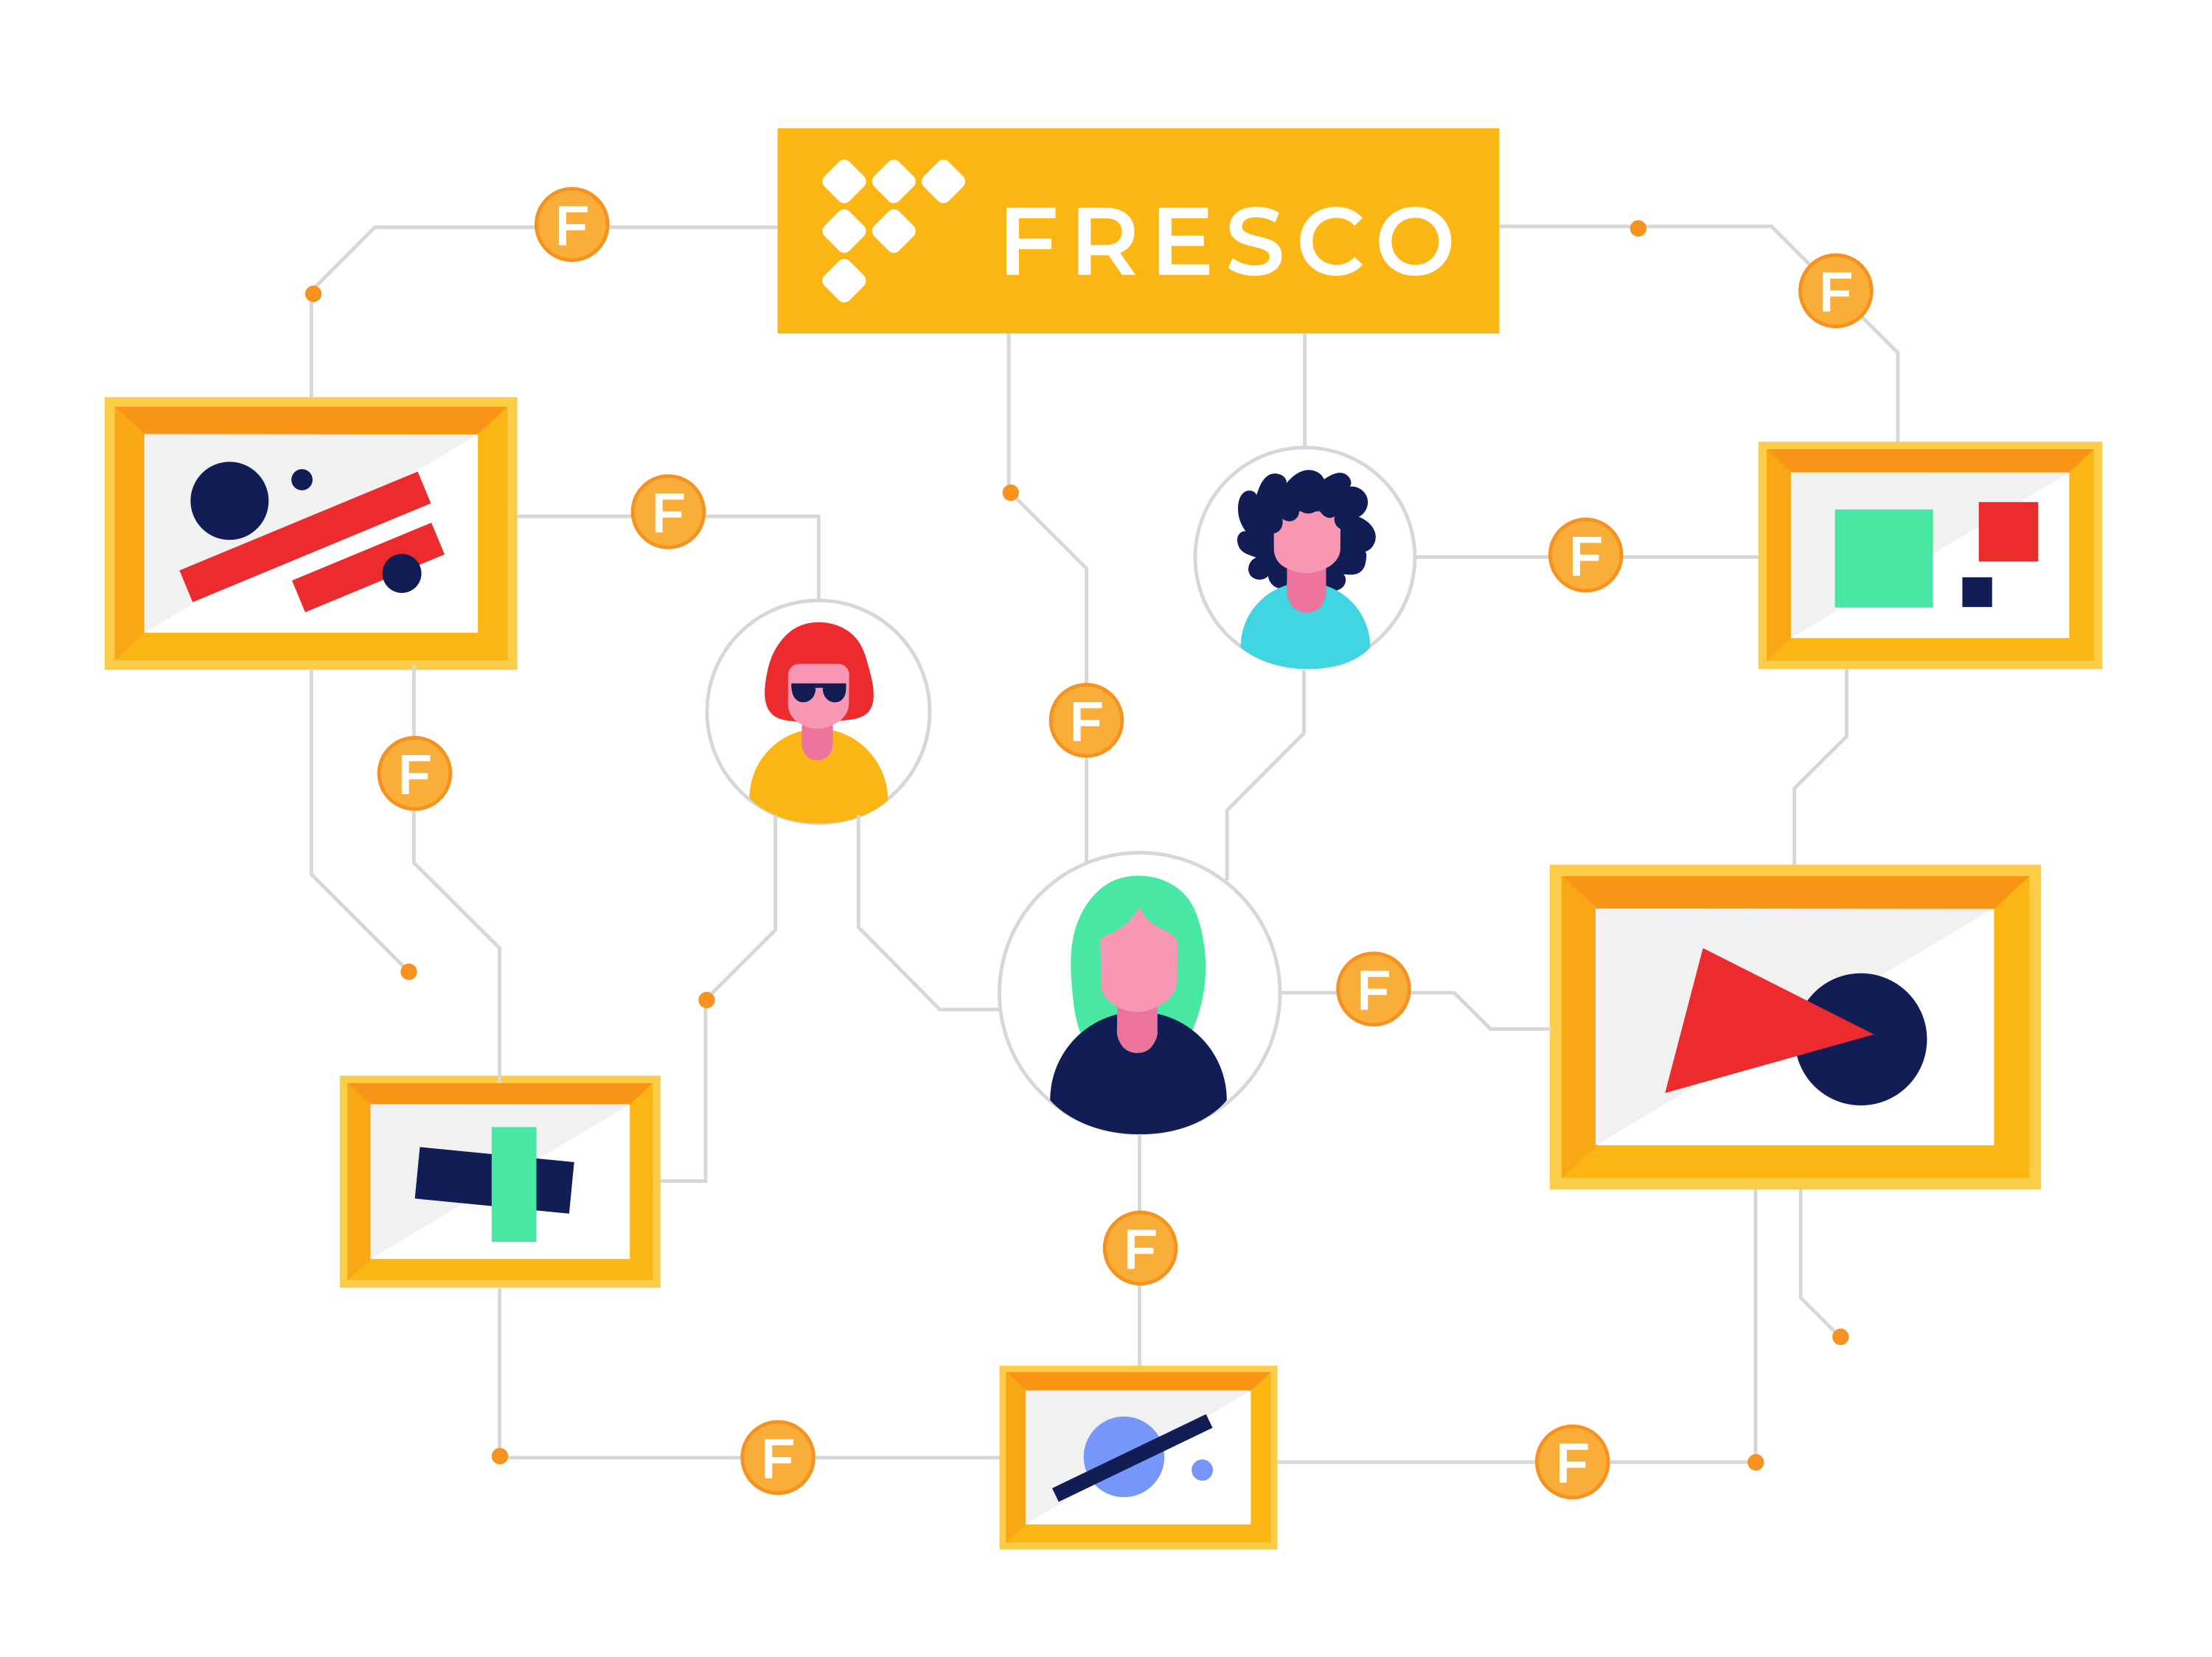 1_2_Revolutions_with_the_Fresco_Network